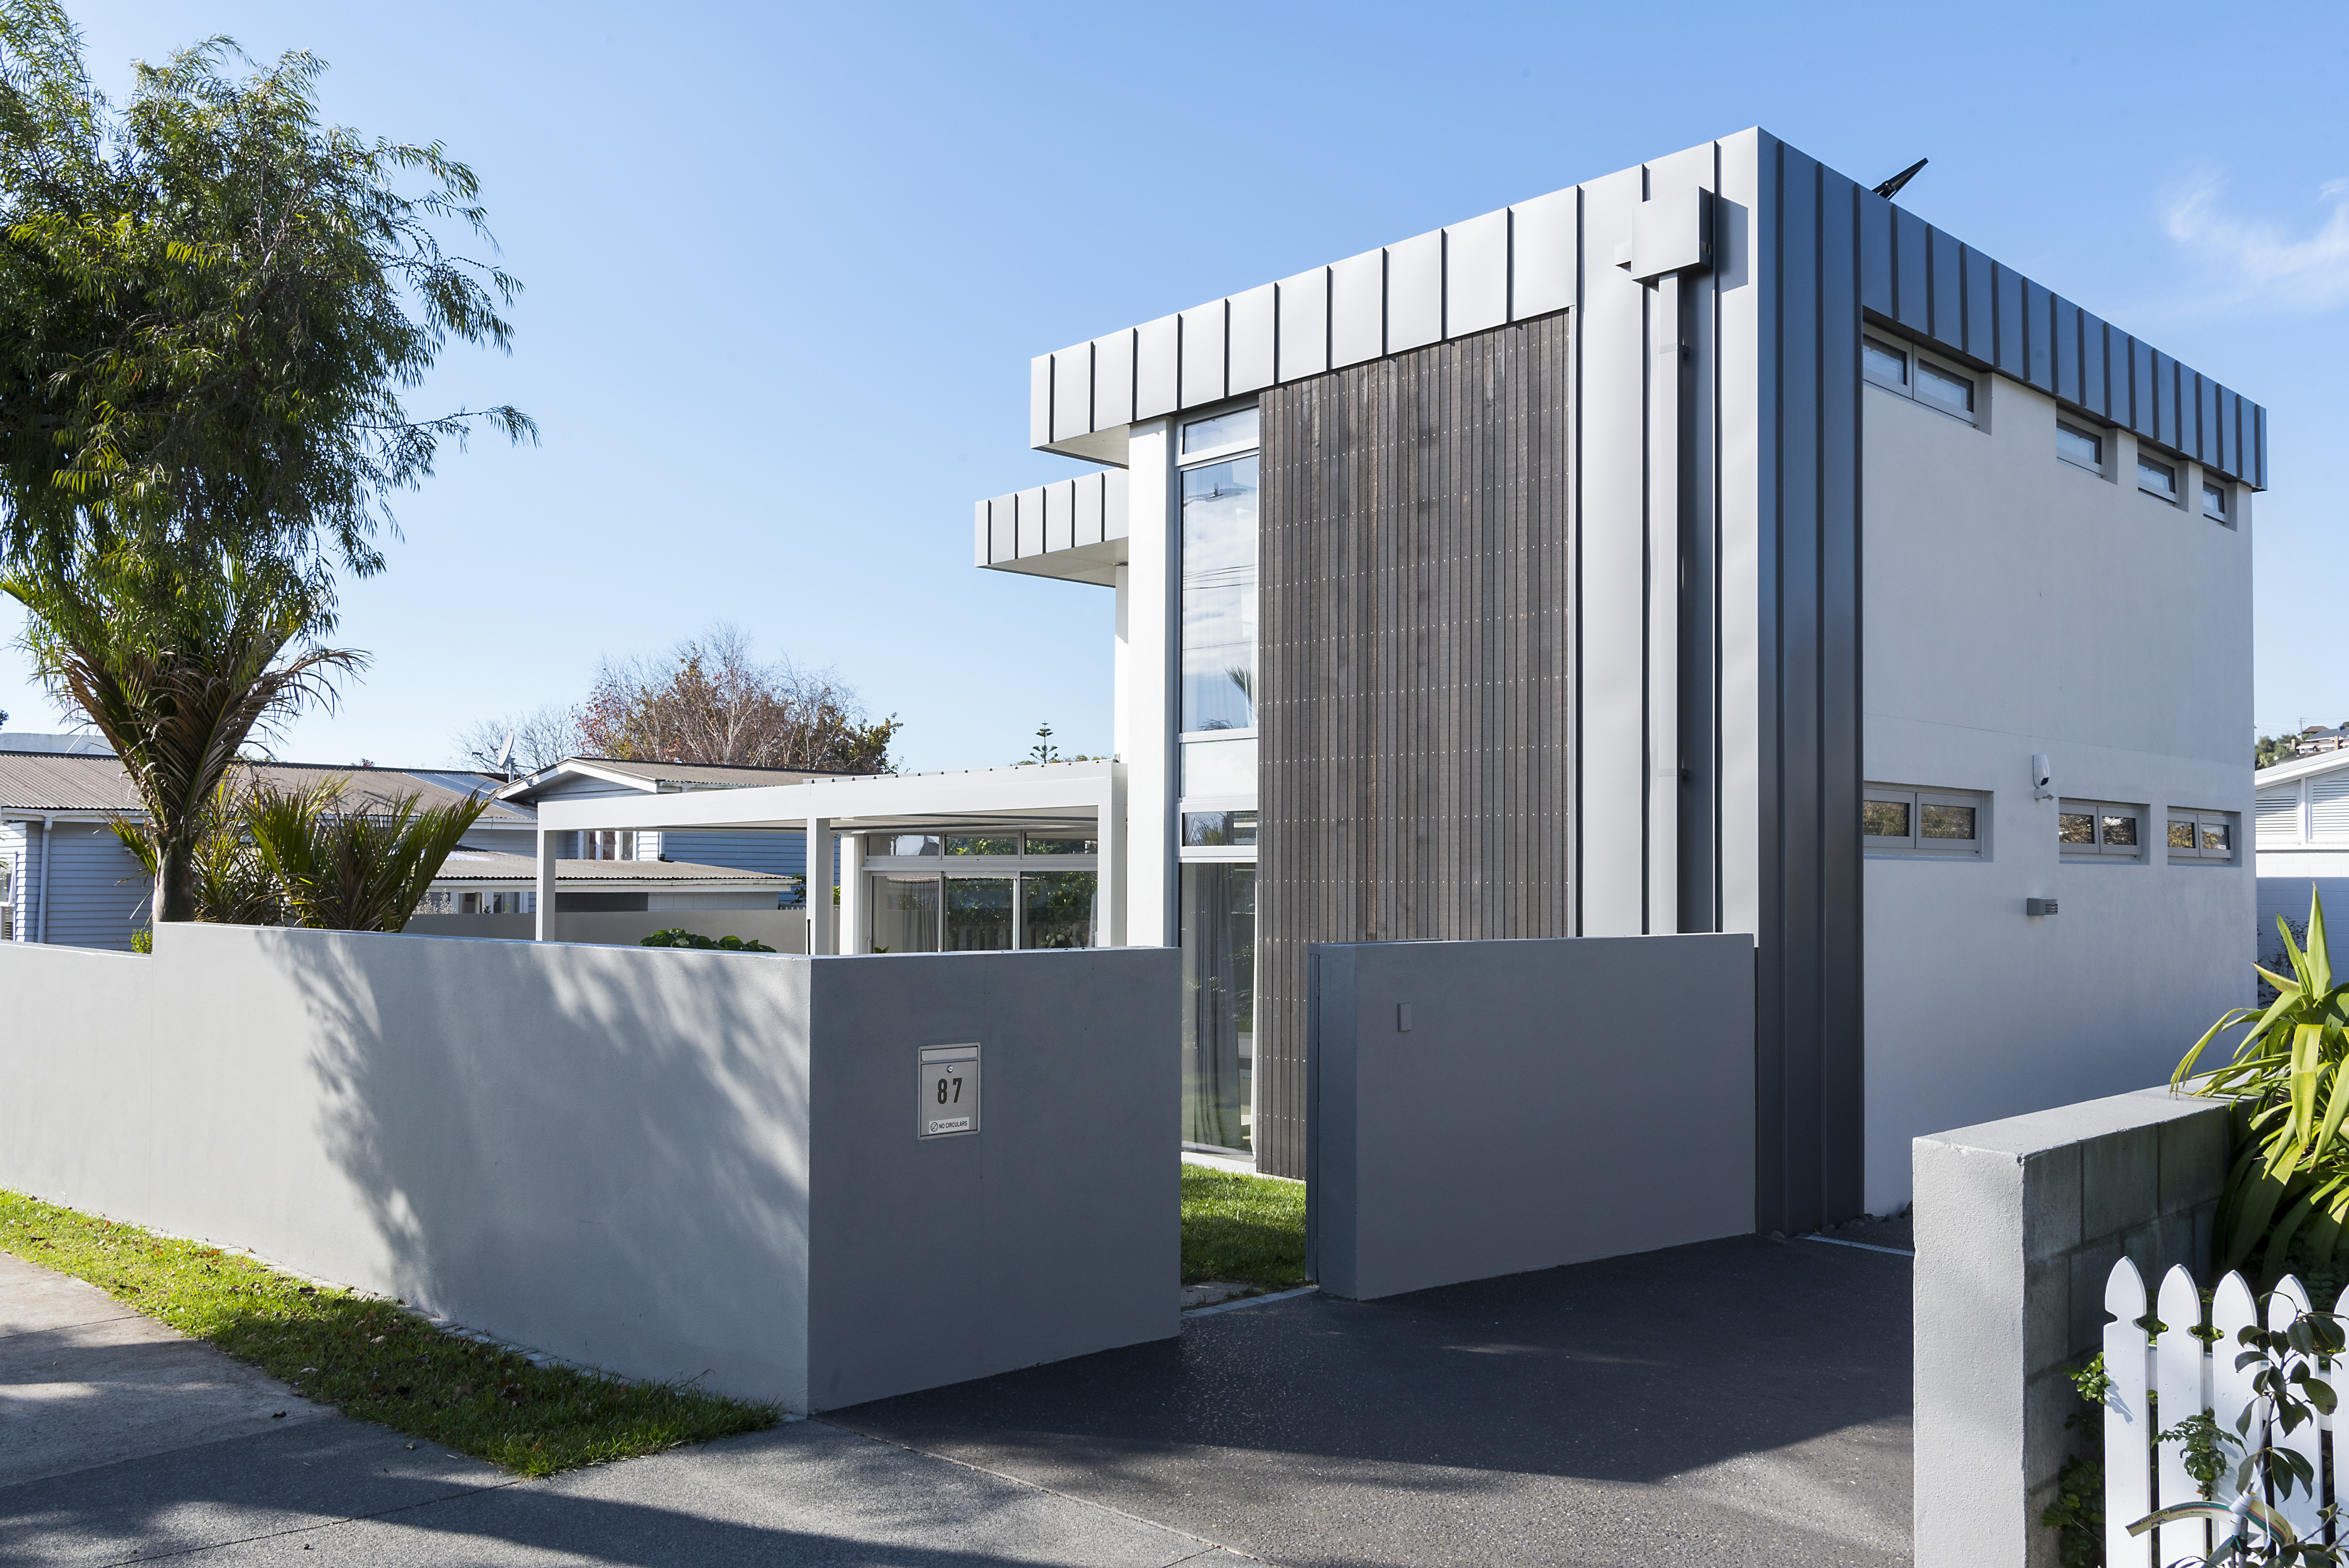 Road frontage private and modern